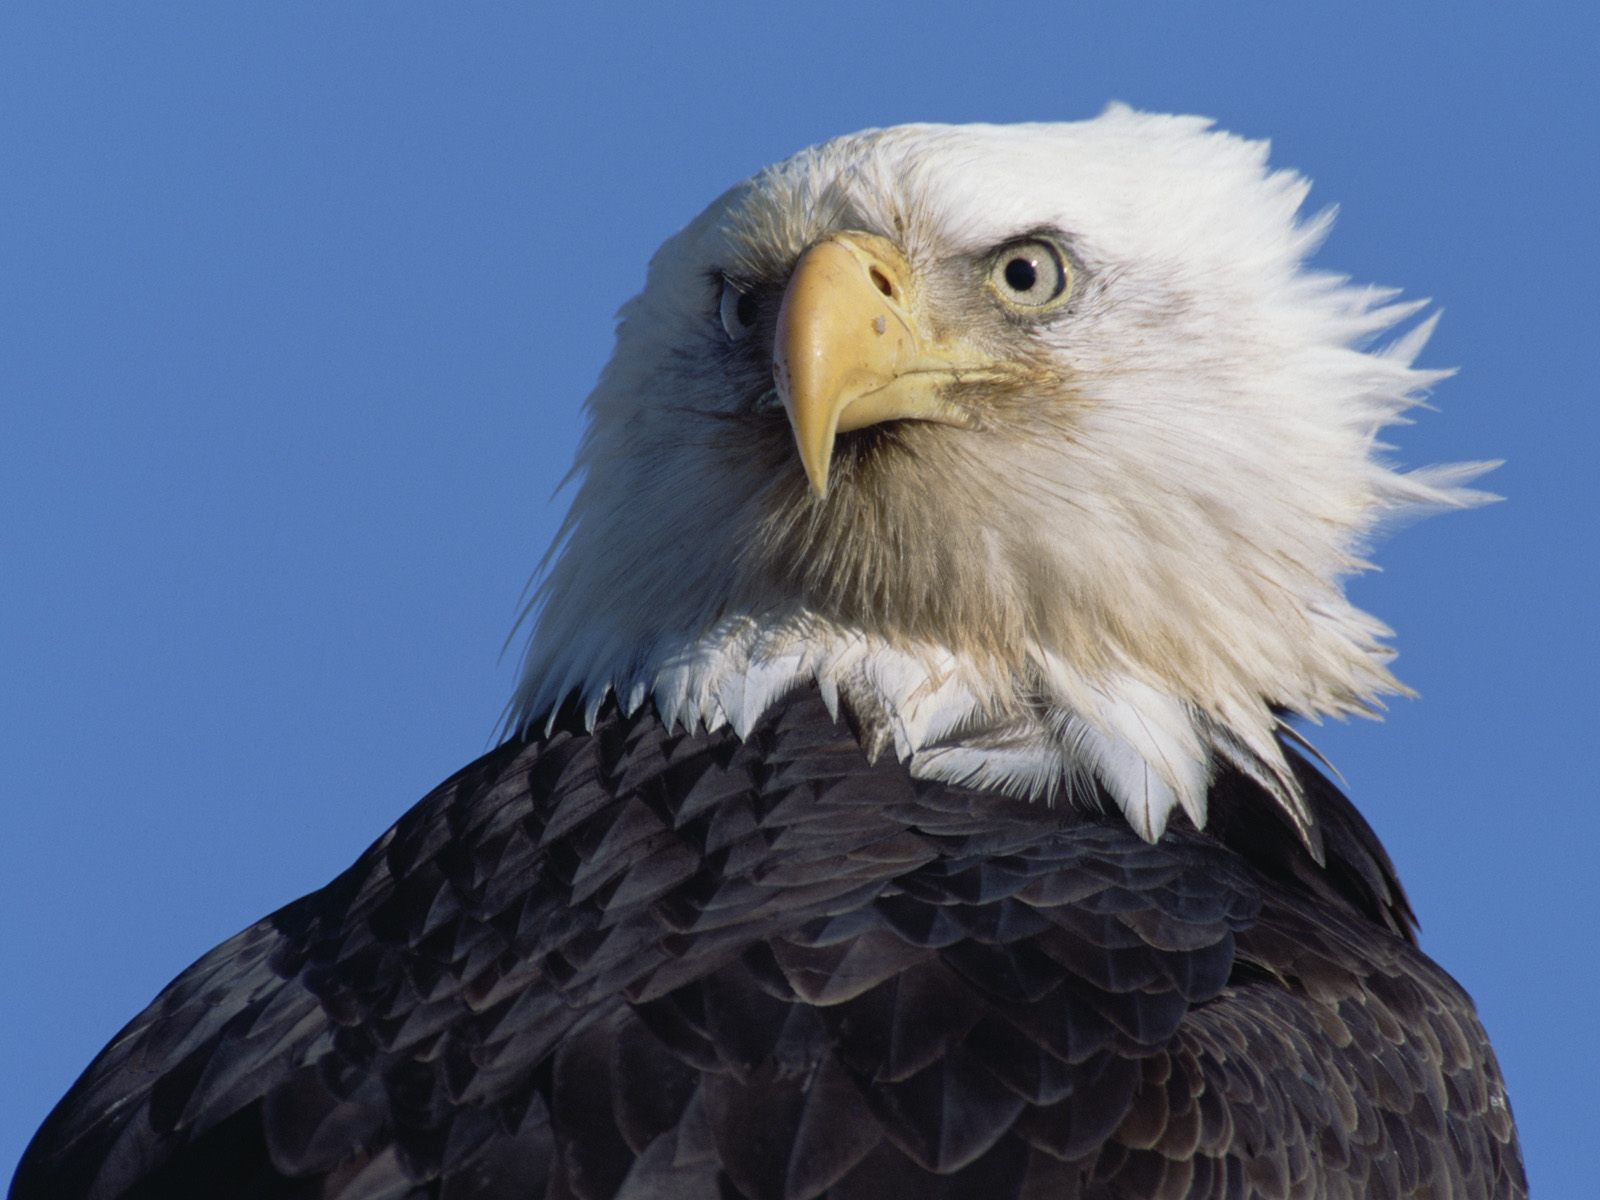 Previous USA Wallpaper Intense Stare Bald Eagle